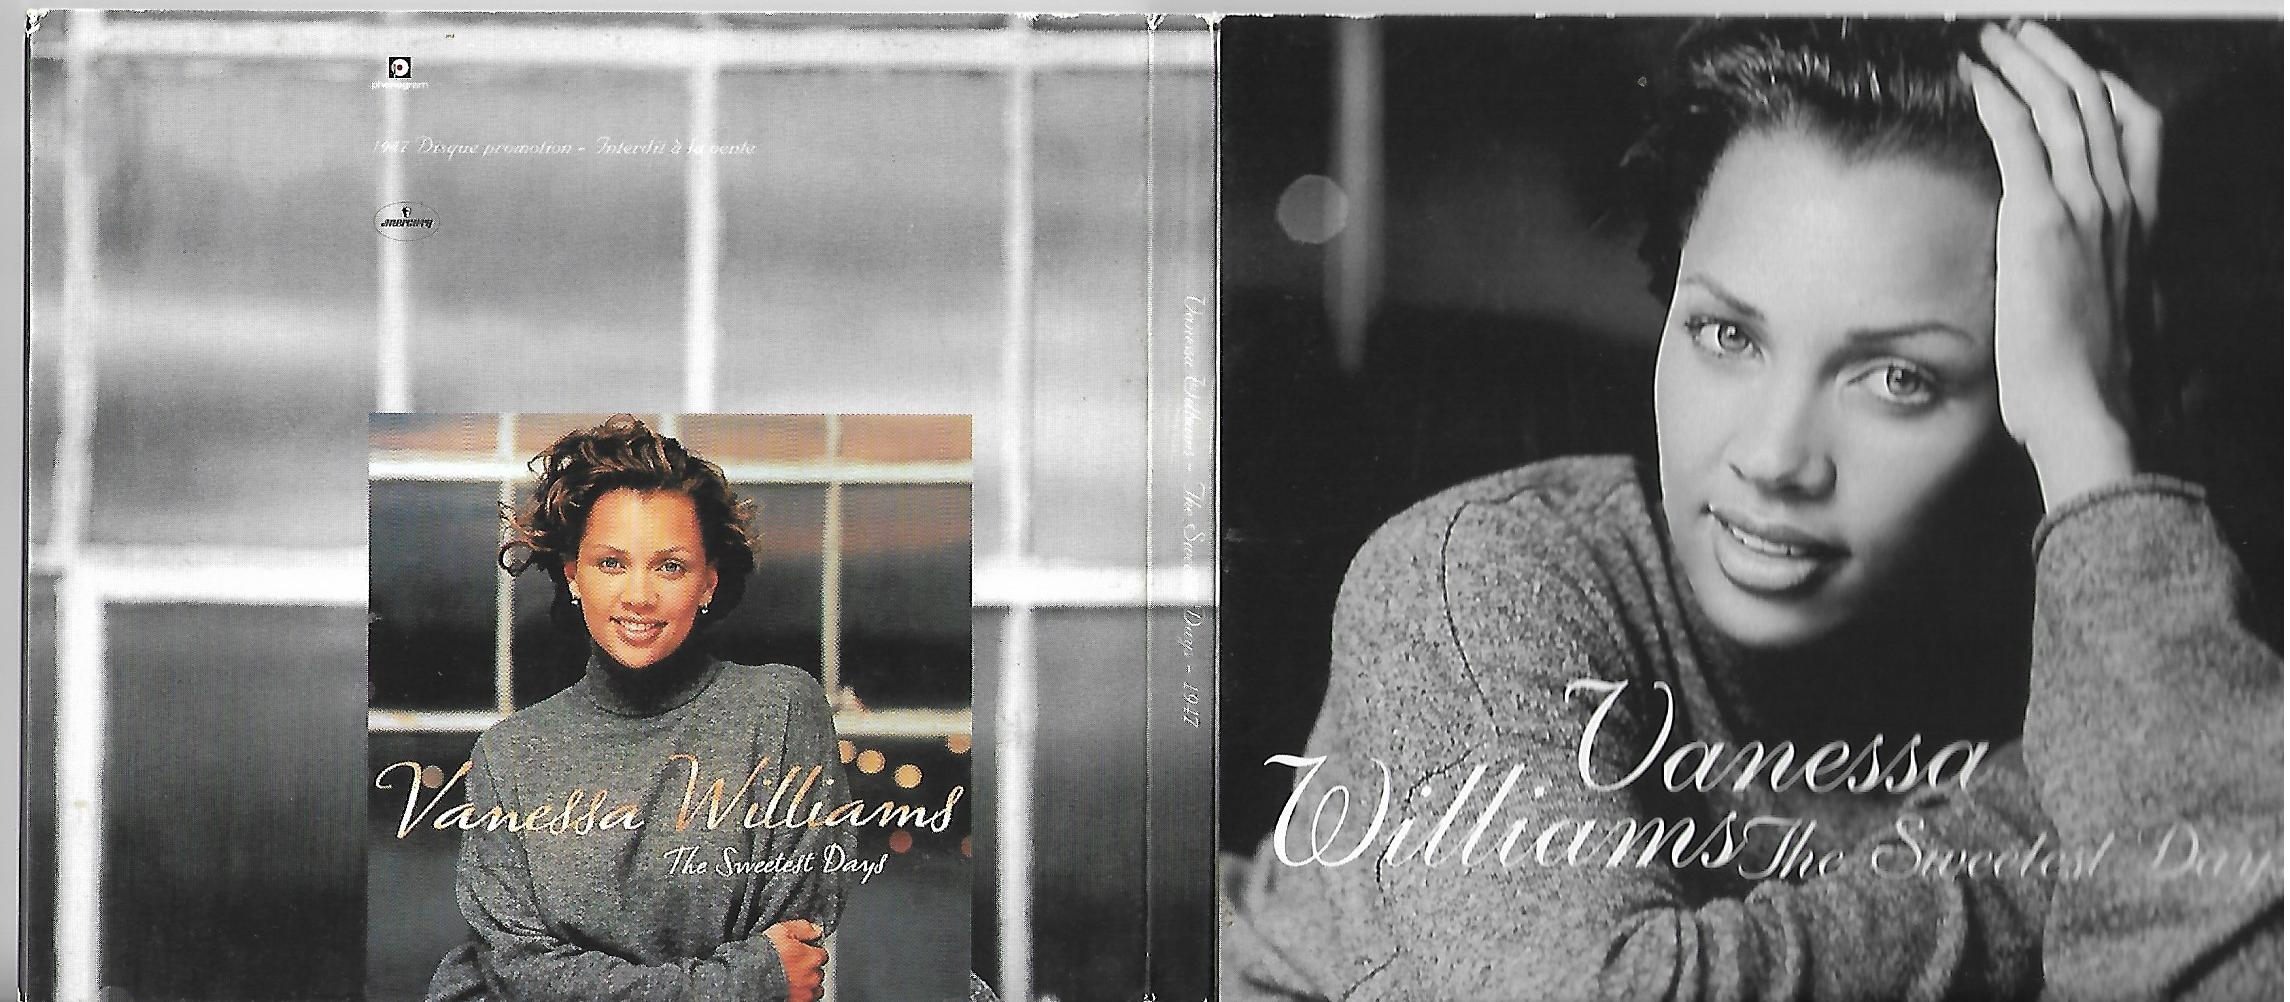 Vanessa WILLIAMS - The Sweetest Days French Promo Digipack